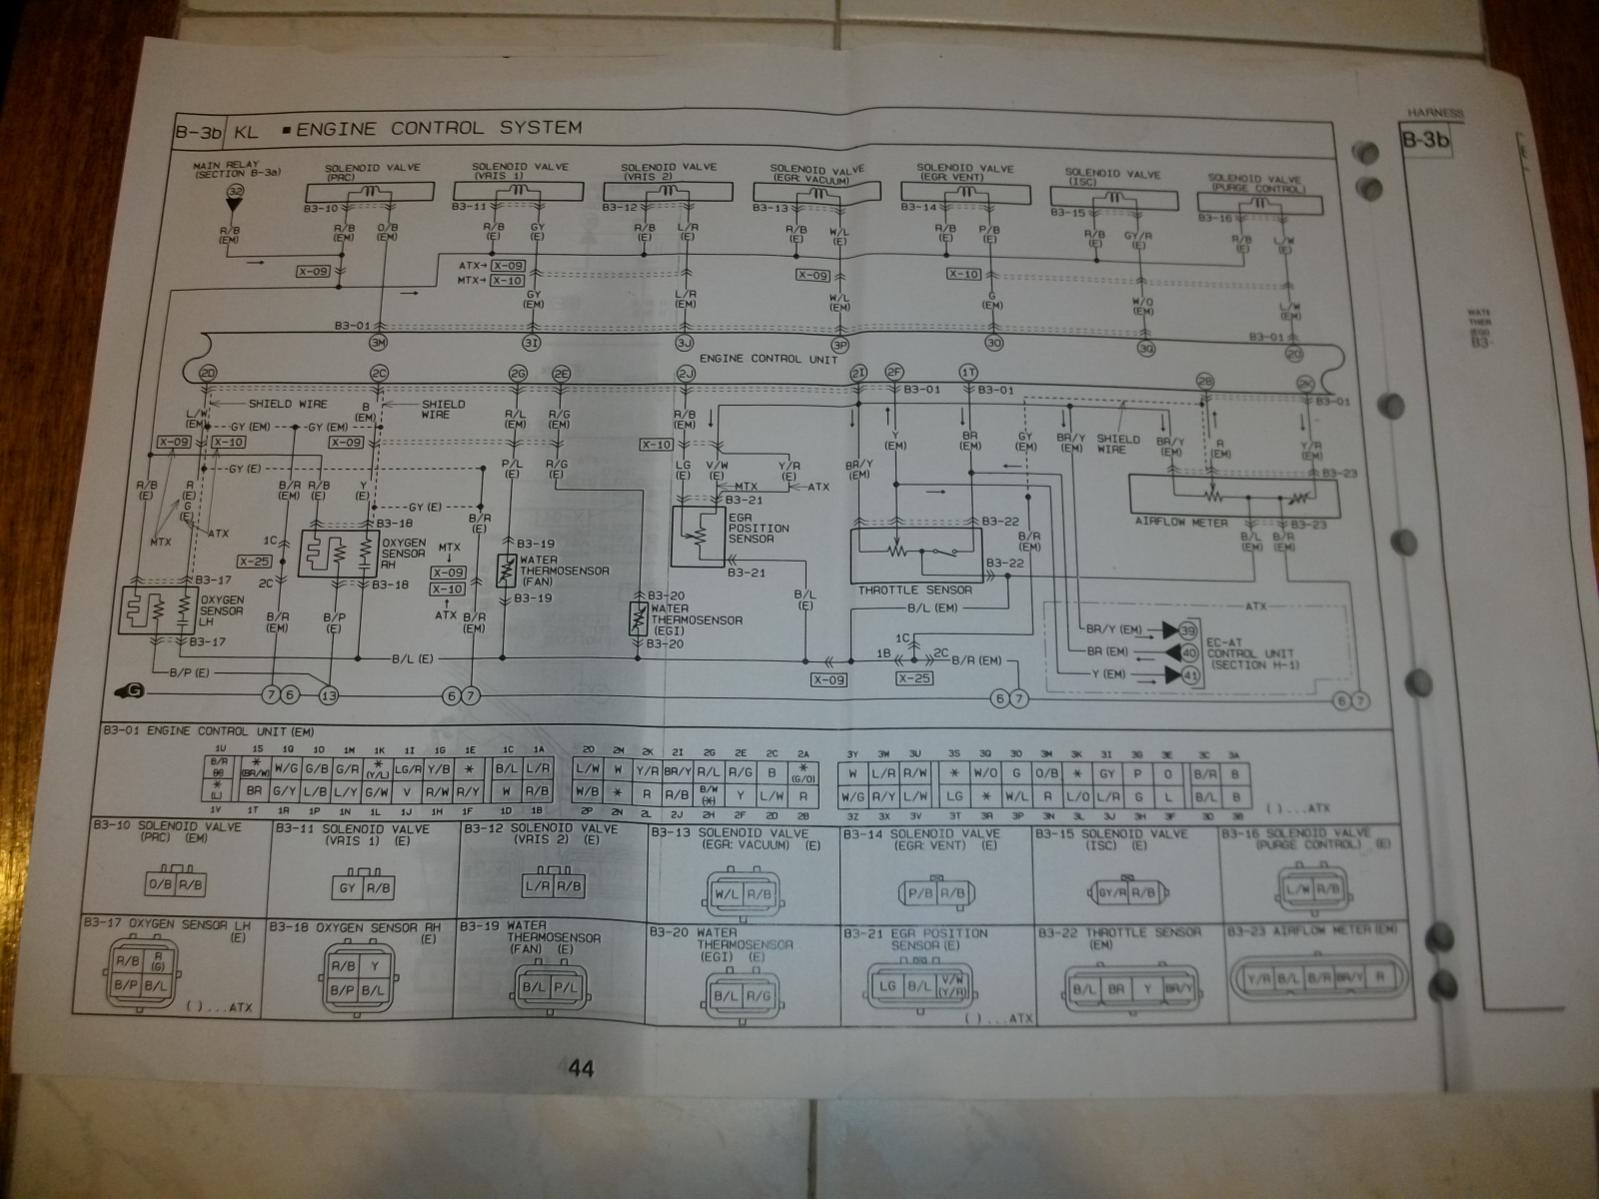 Klze Pin Outs Kl31 1993 Mazda Mx3 Engine Diagram Attached Images